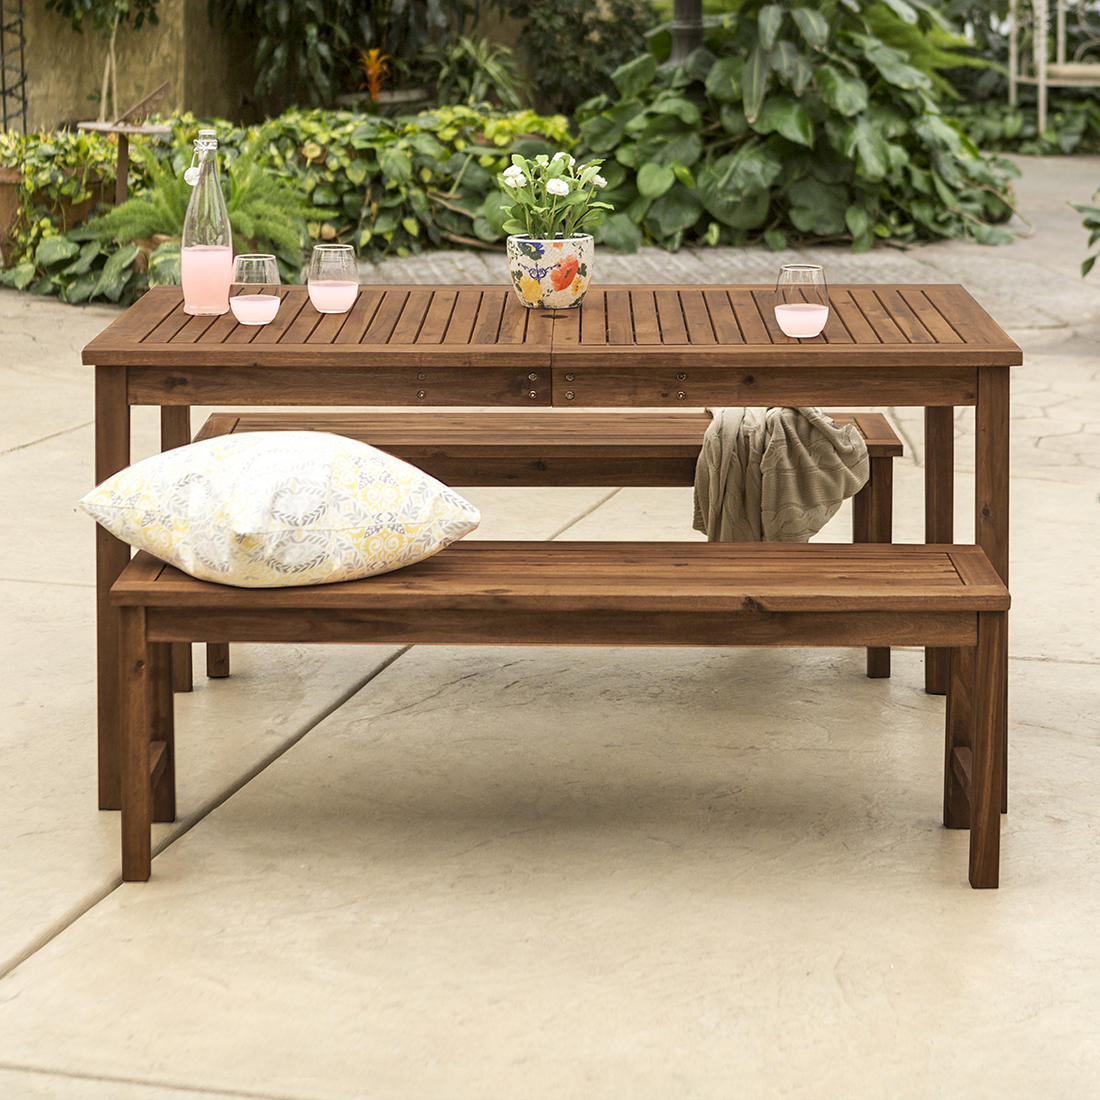 W. Trends 3 Pc. Acacia Wood Outdoor Dining Set   Dark Brown